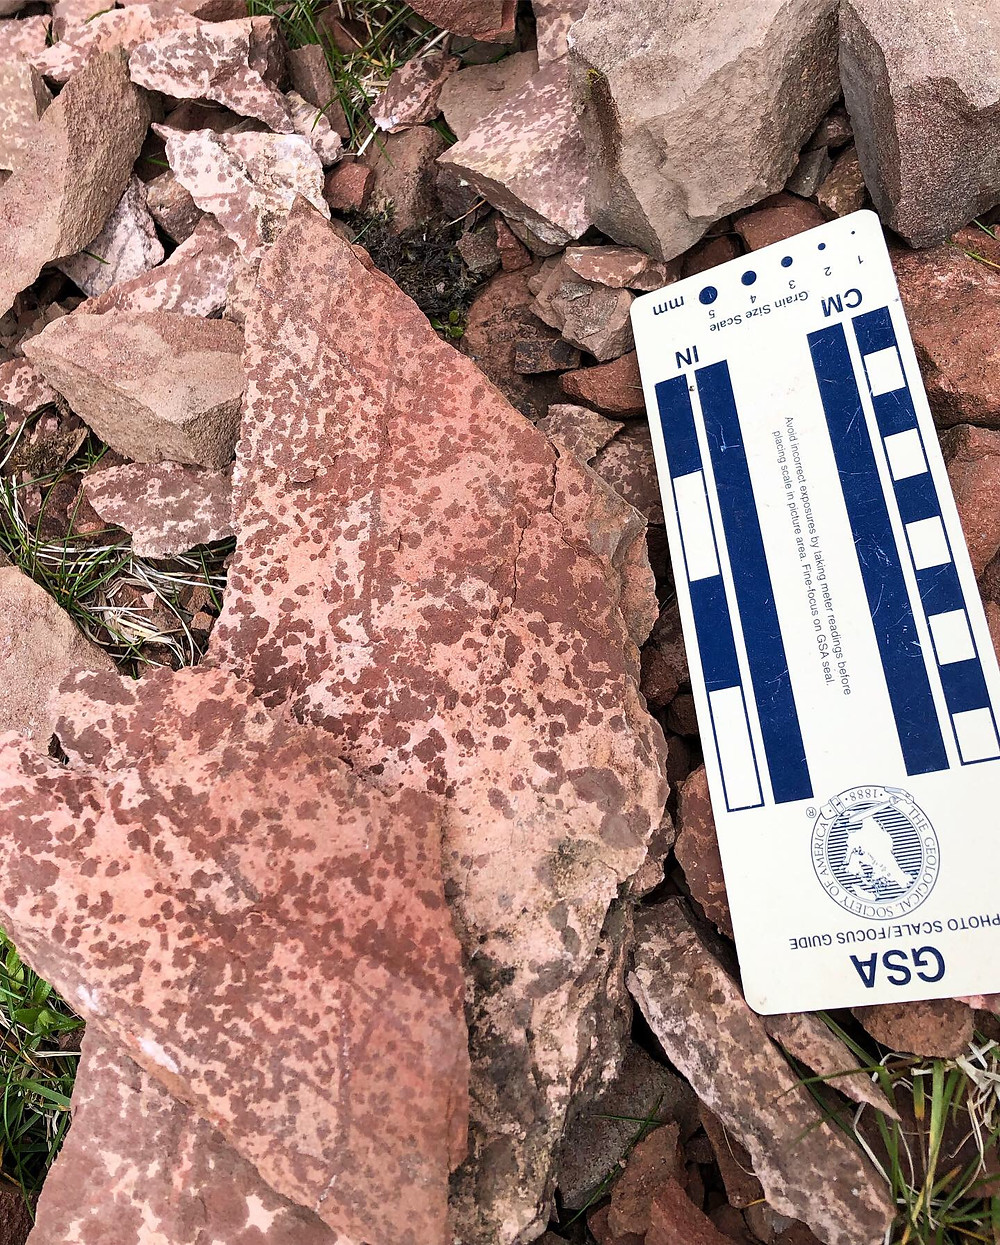 A red rock with dark-red speckles and criss-crossed traces.